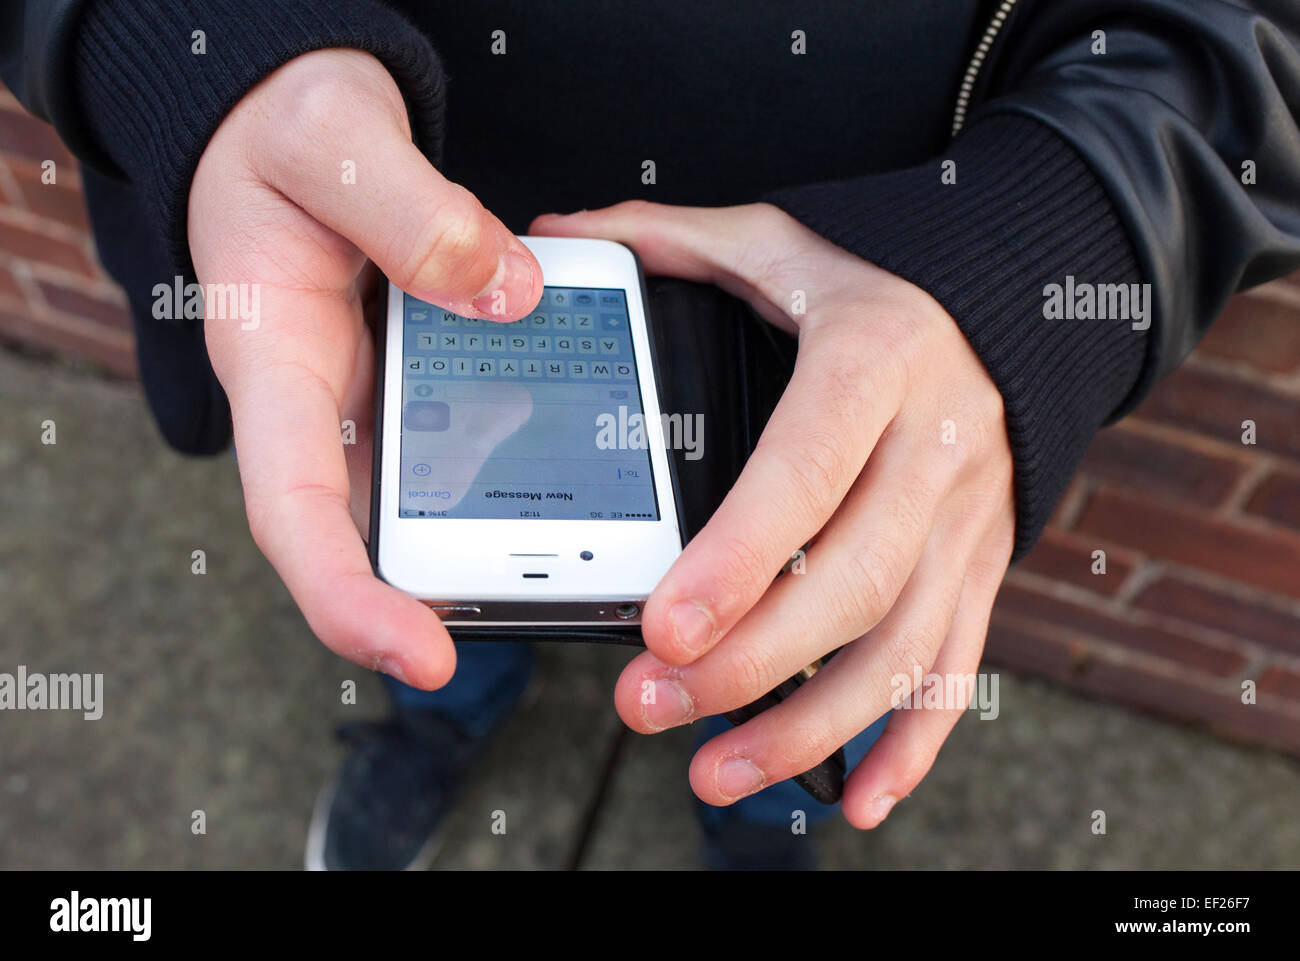 A teenager using an iPhone to send a text message in the U.K. - Stock Image